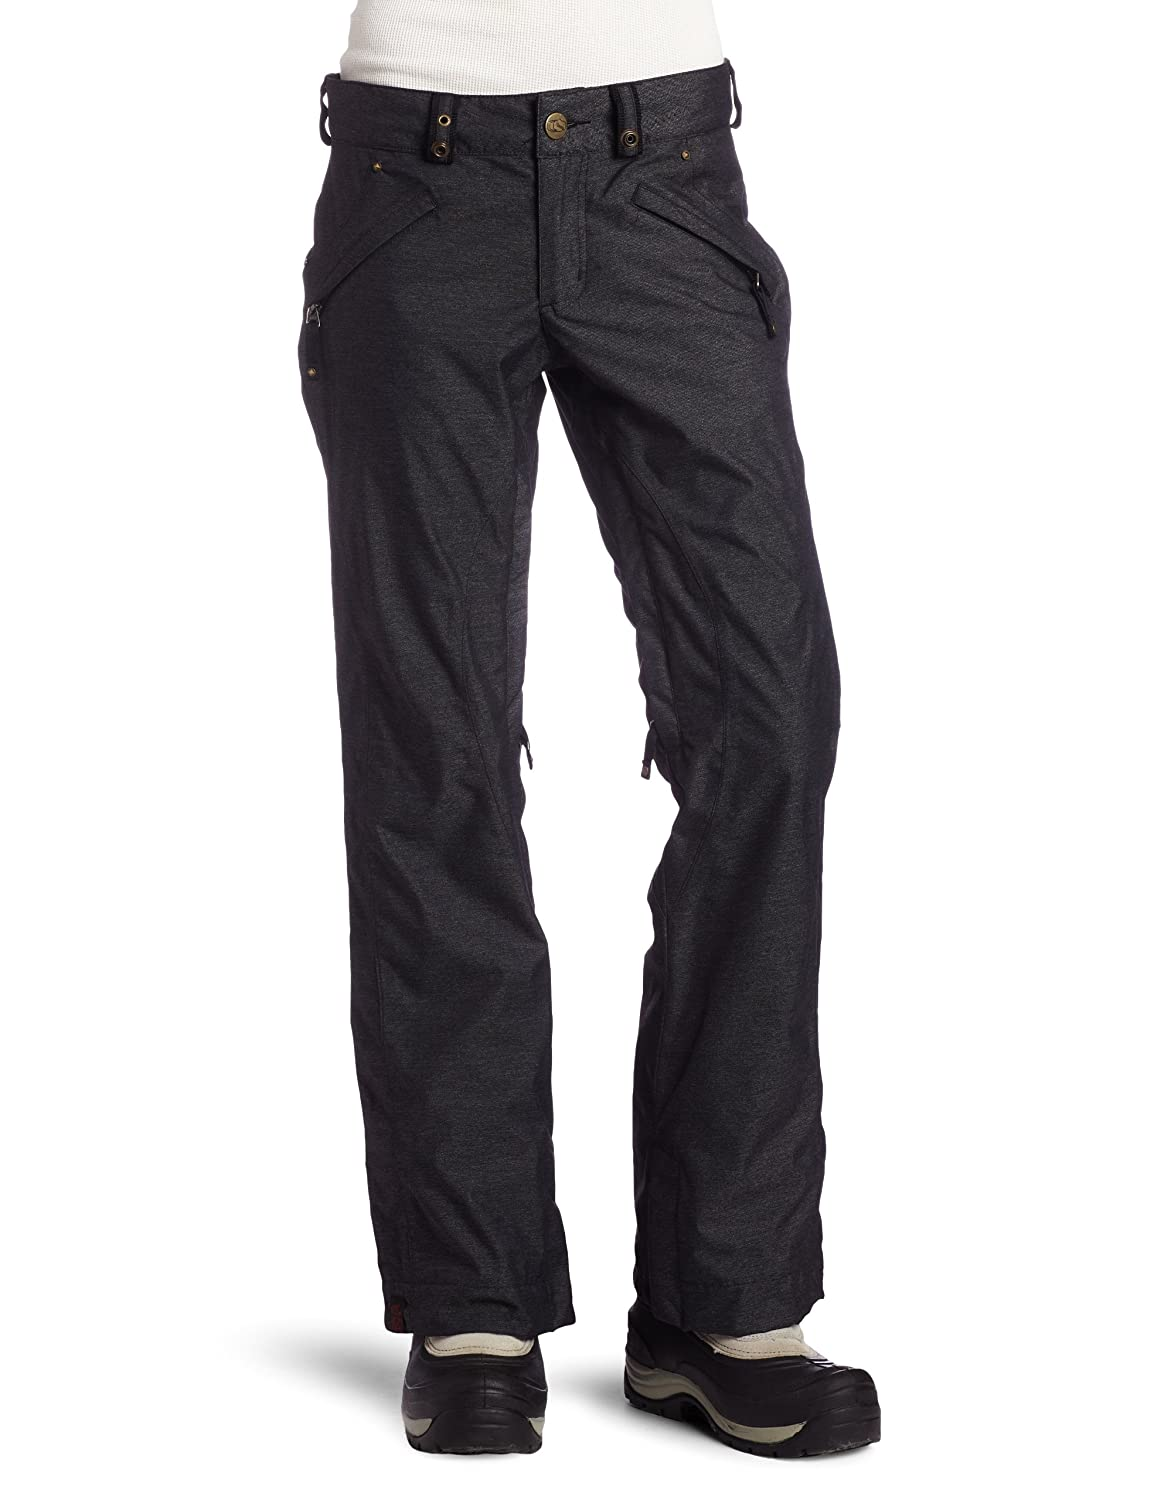 Bonfire Womens Ashland Pants